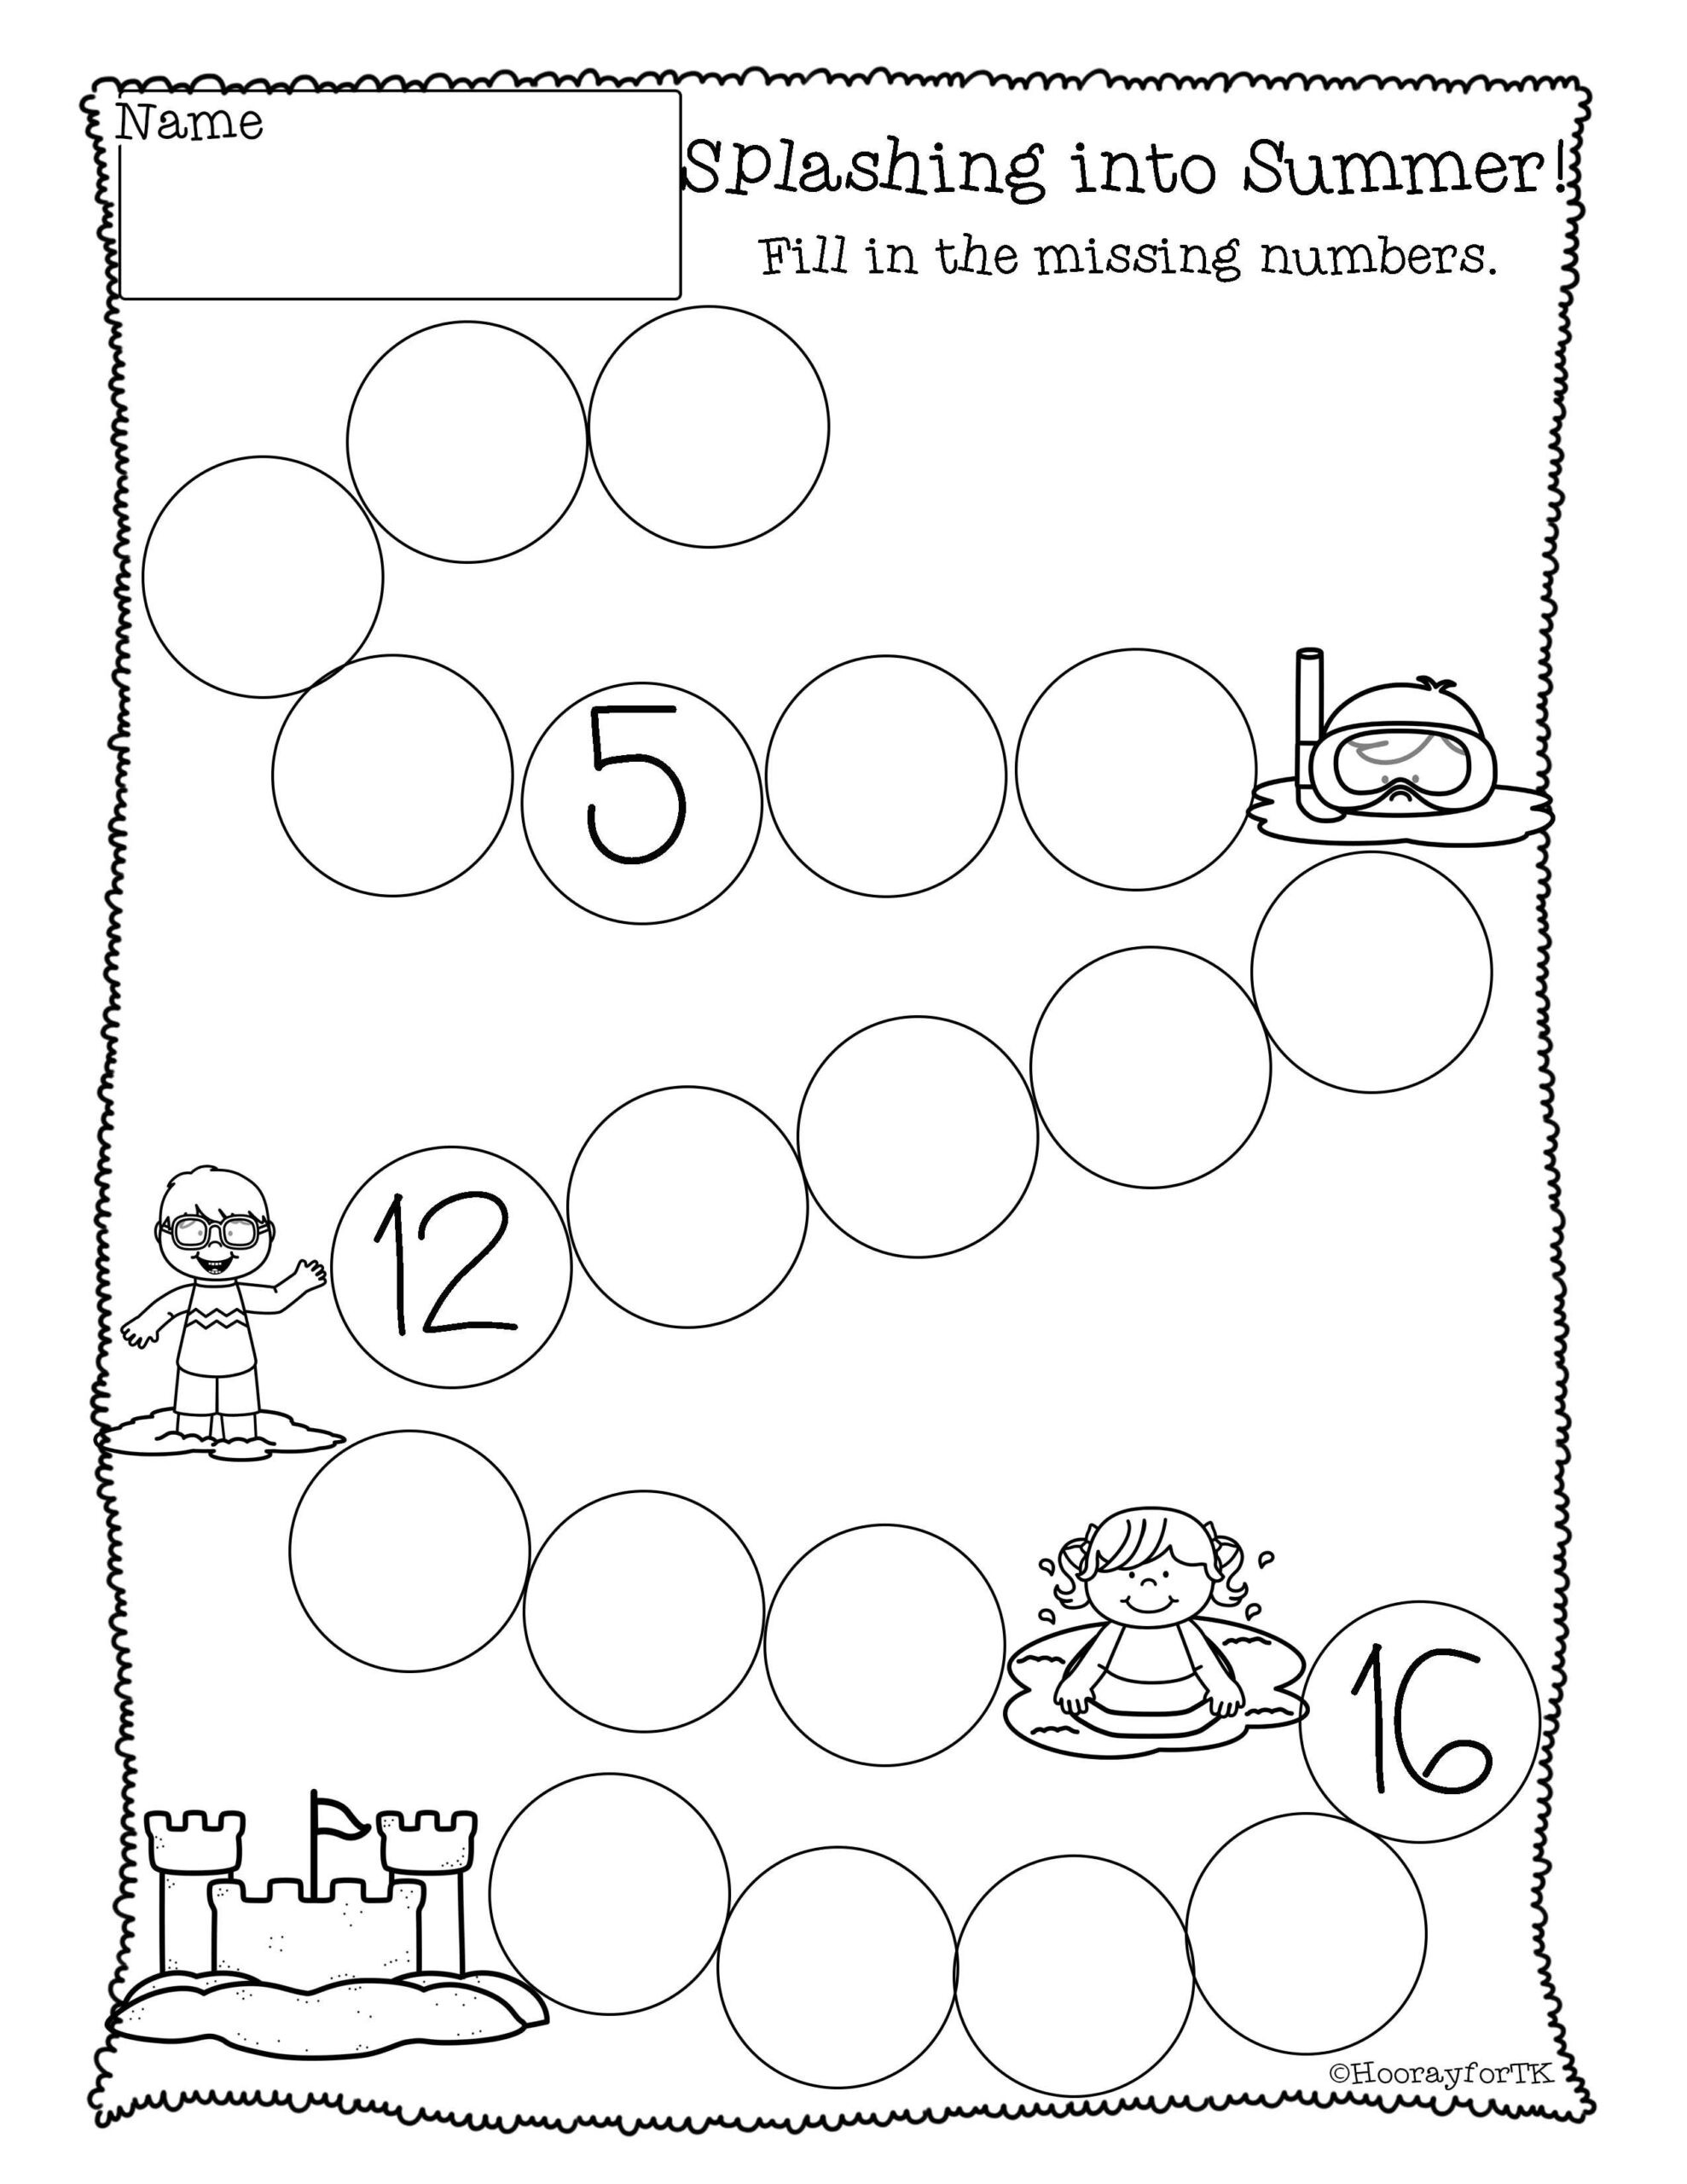 Common Core Kindergarten Math Worksheets Printable Math Activities Kindergarten Worksheetfun English